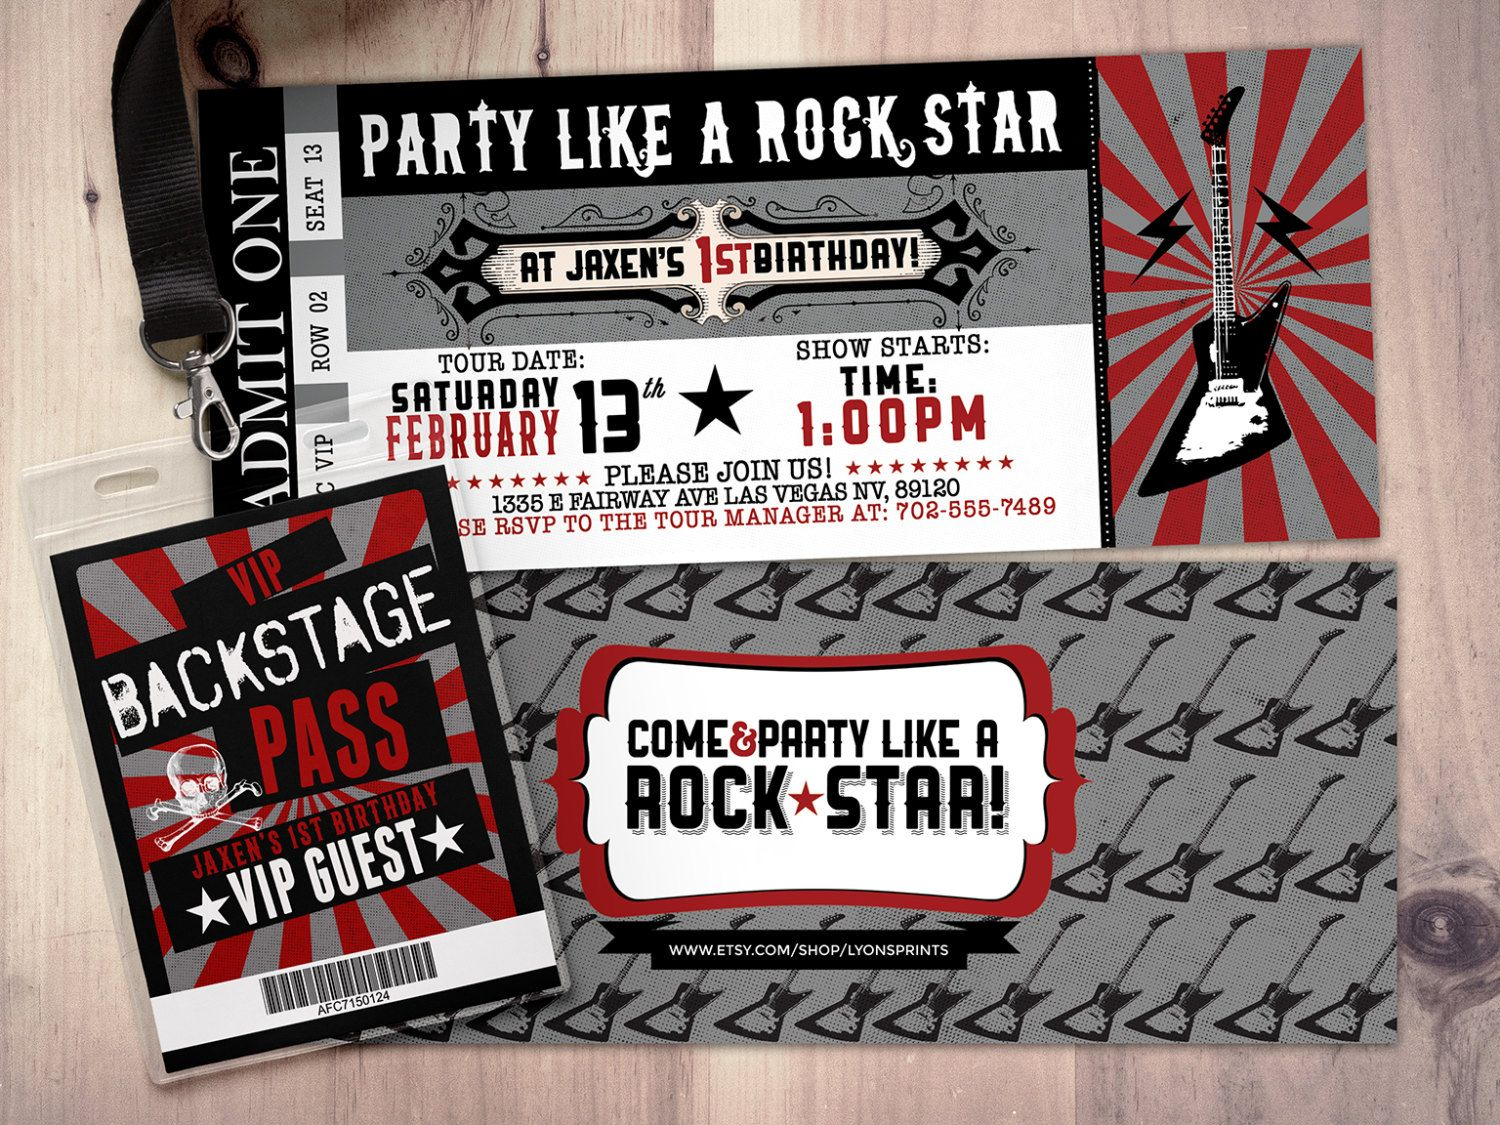 movie ticket stub wedding invitation%0A ROCK STAR concert ticket birthday party invitation by LyonsPrints